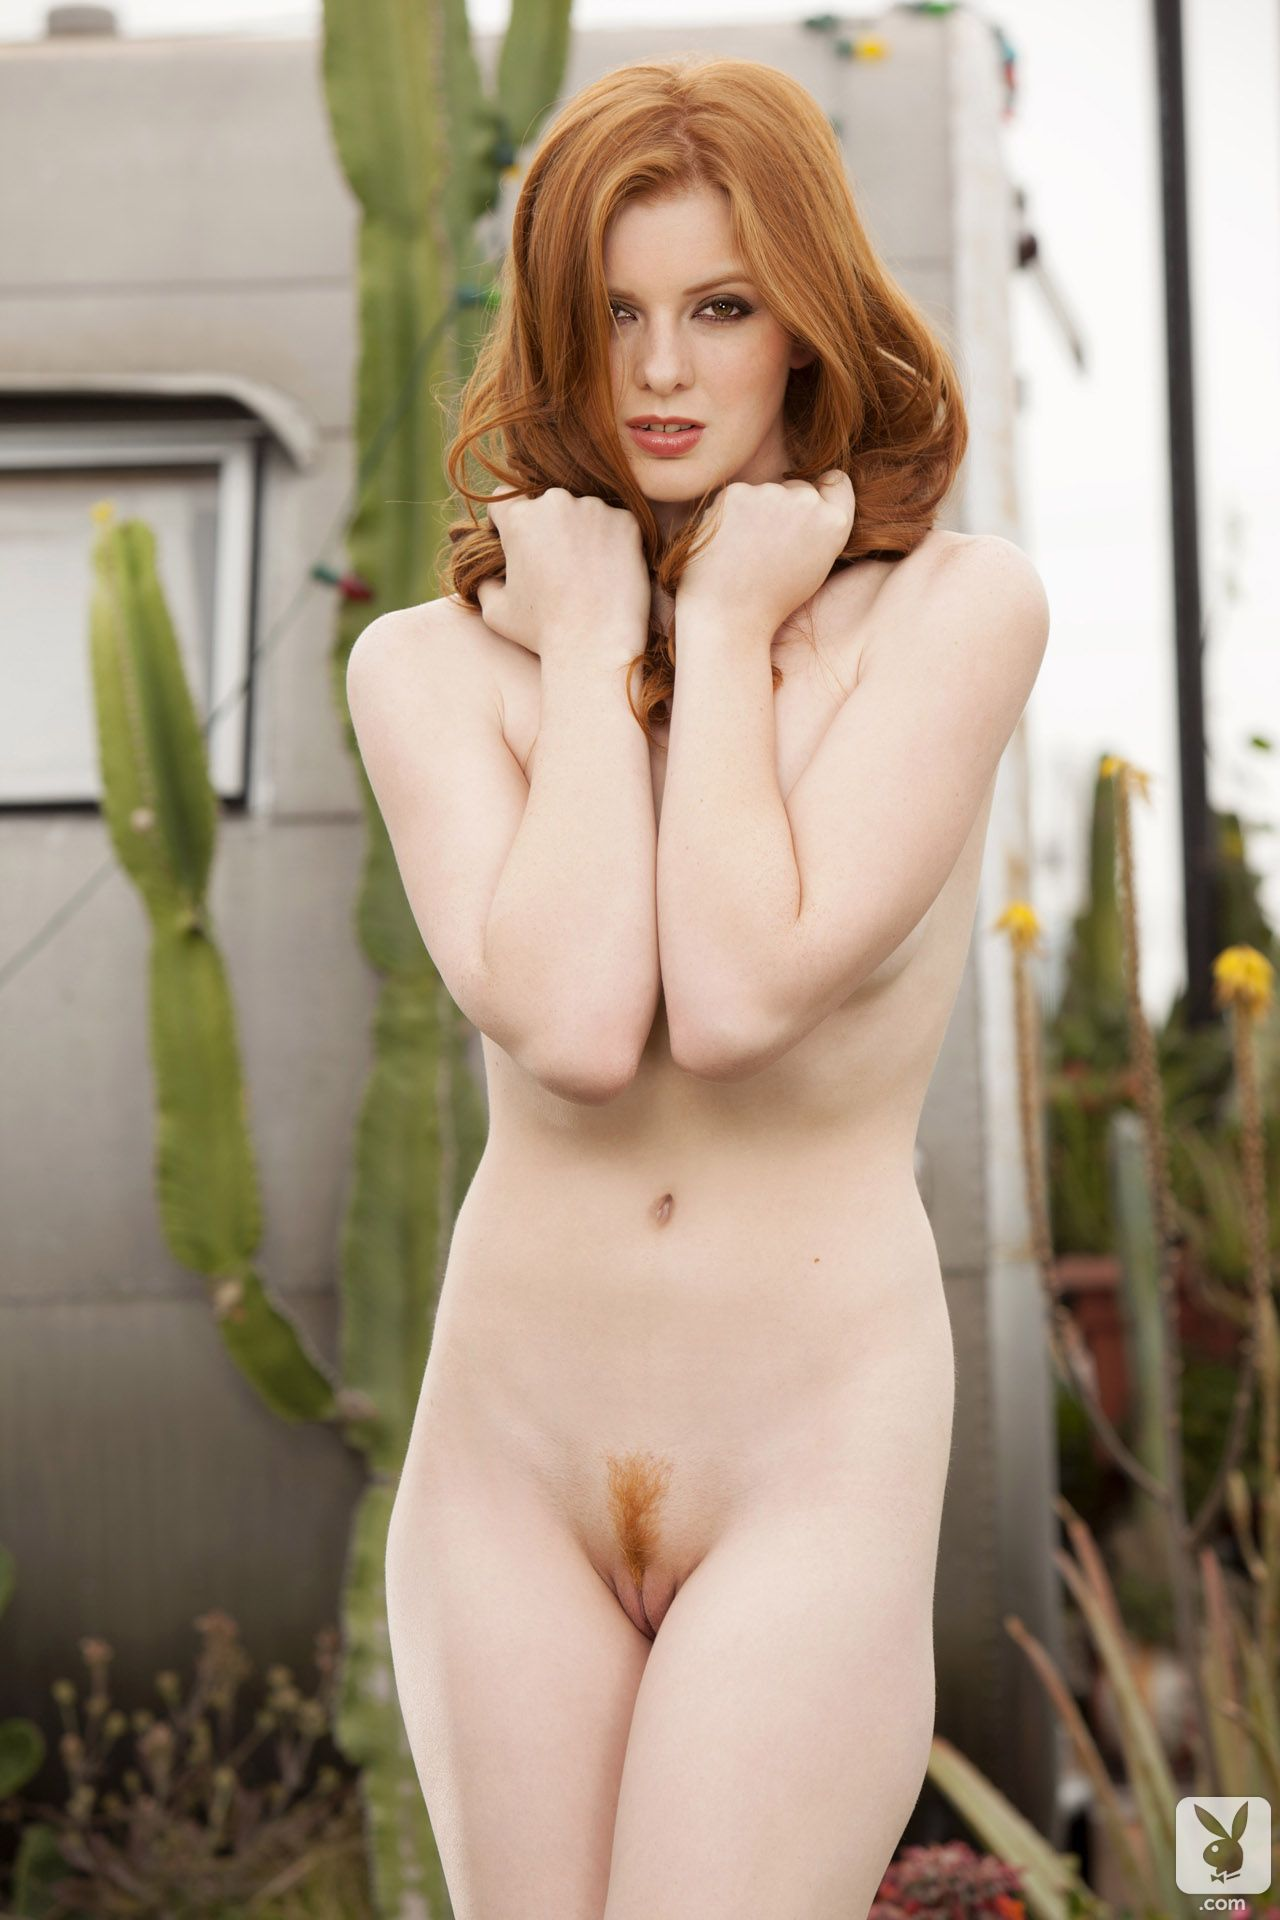 ginger naked girls